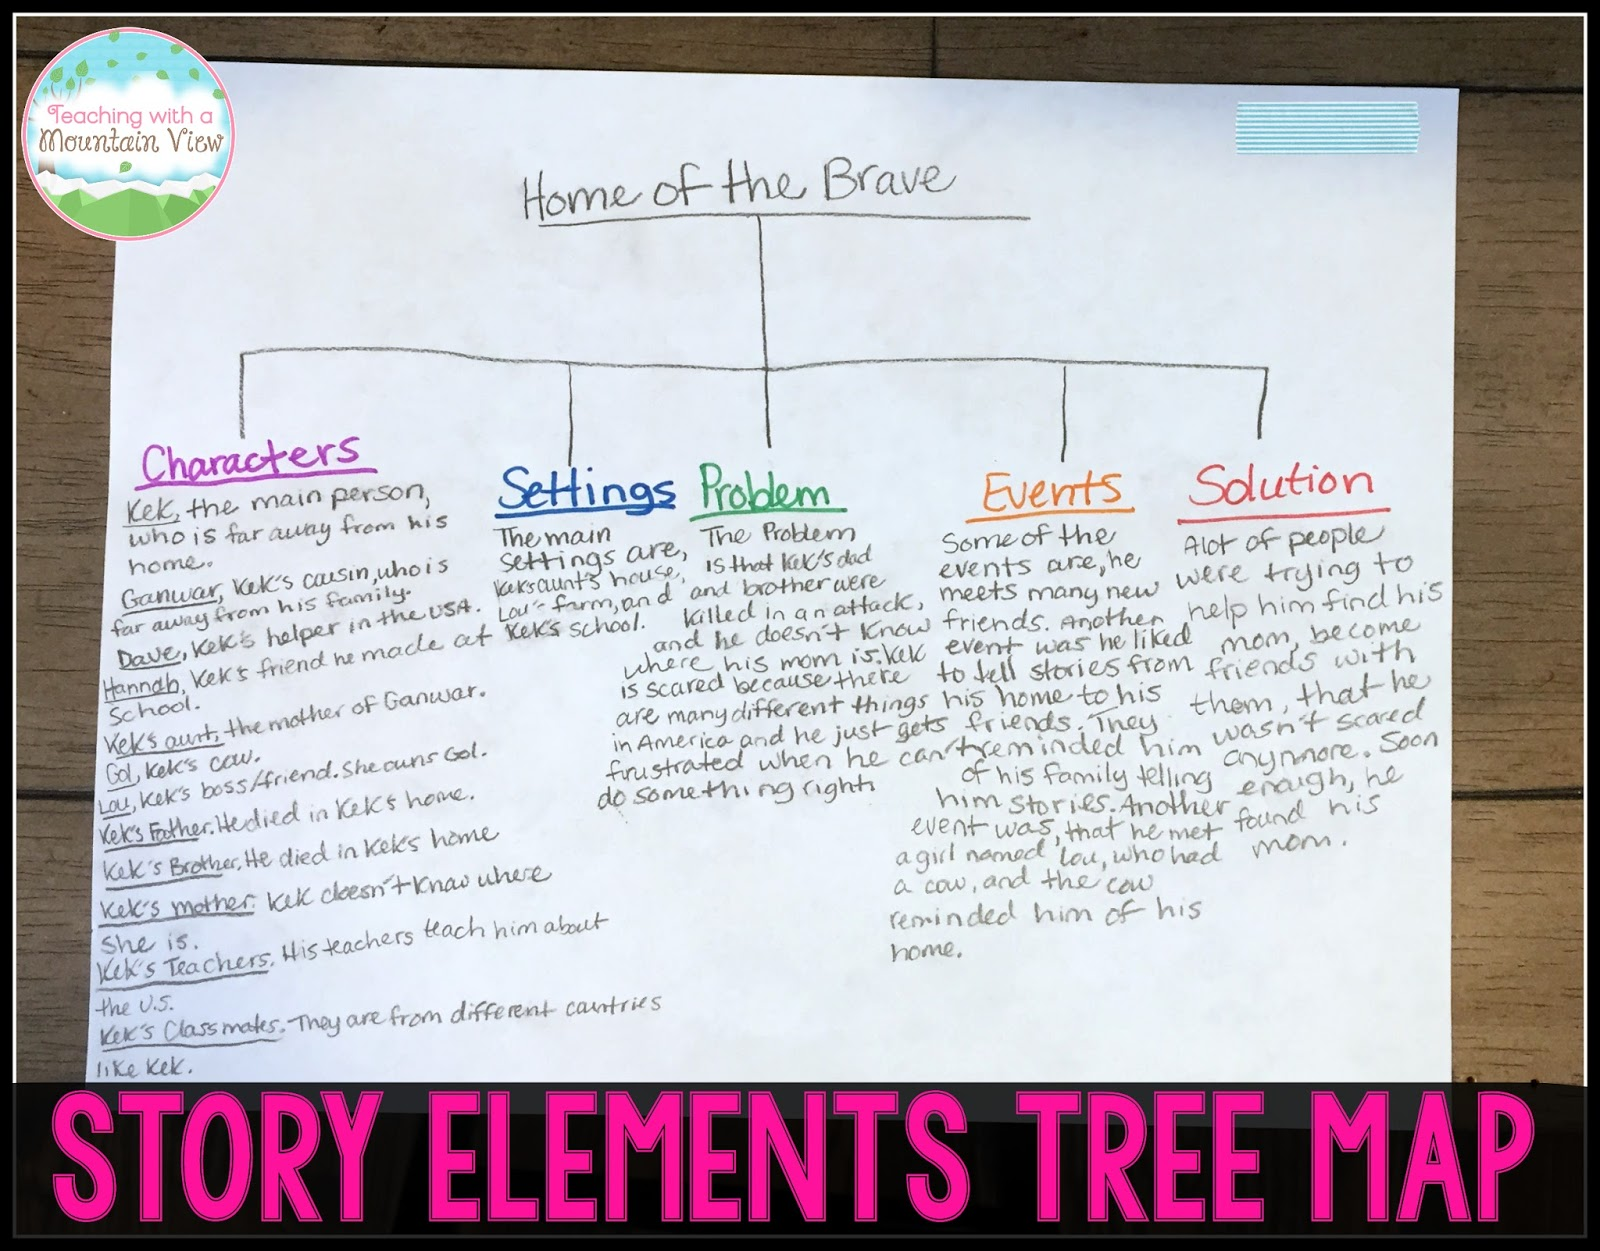 hight resolution of during our story elements unit one of the culminating assignments i have them complete is a story elements tree map from thinking maps here s an example